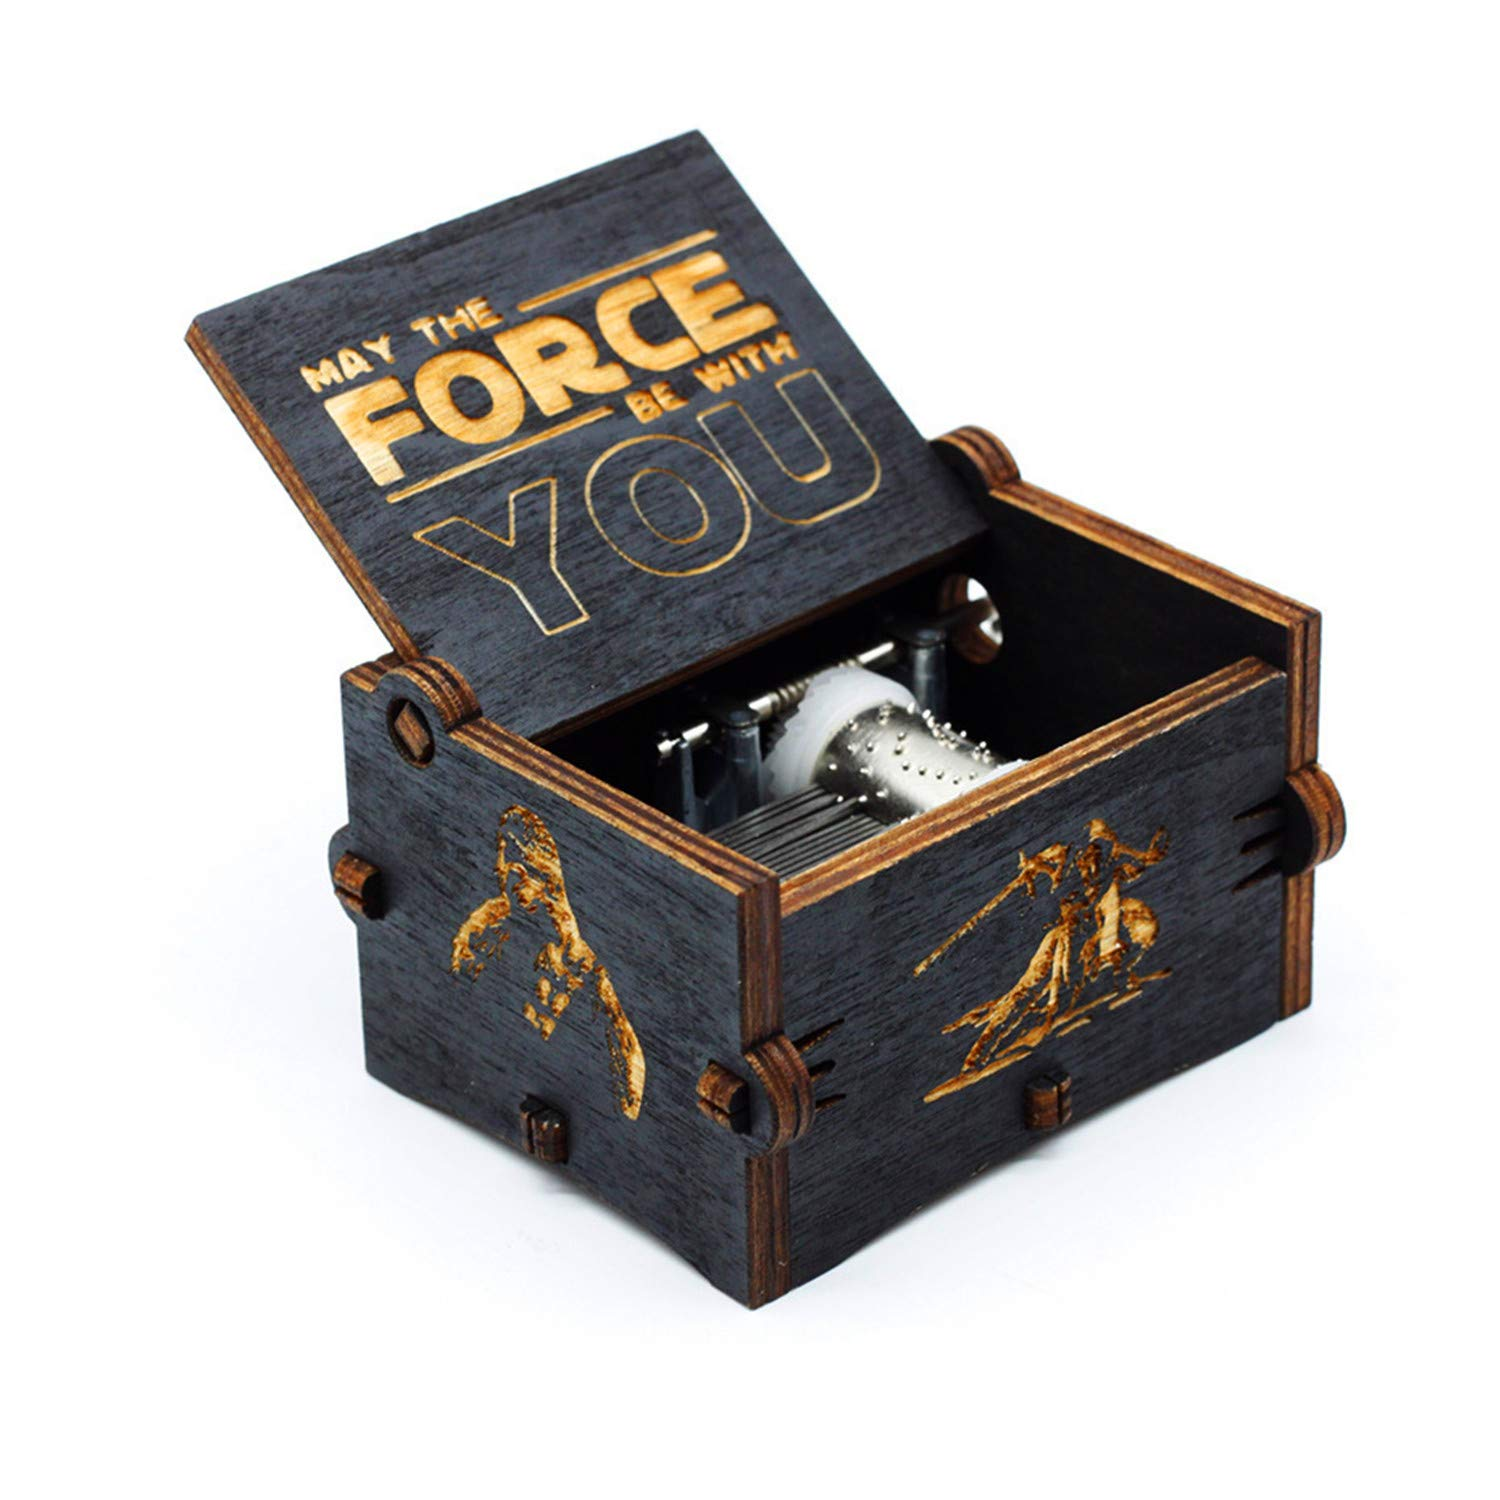 Black Wood Star Wars Music Box, Antique Carved Hand Cranked Wooden Musical Boxes Home Decoration Crafts for Children Gifts HLZK